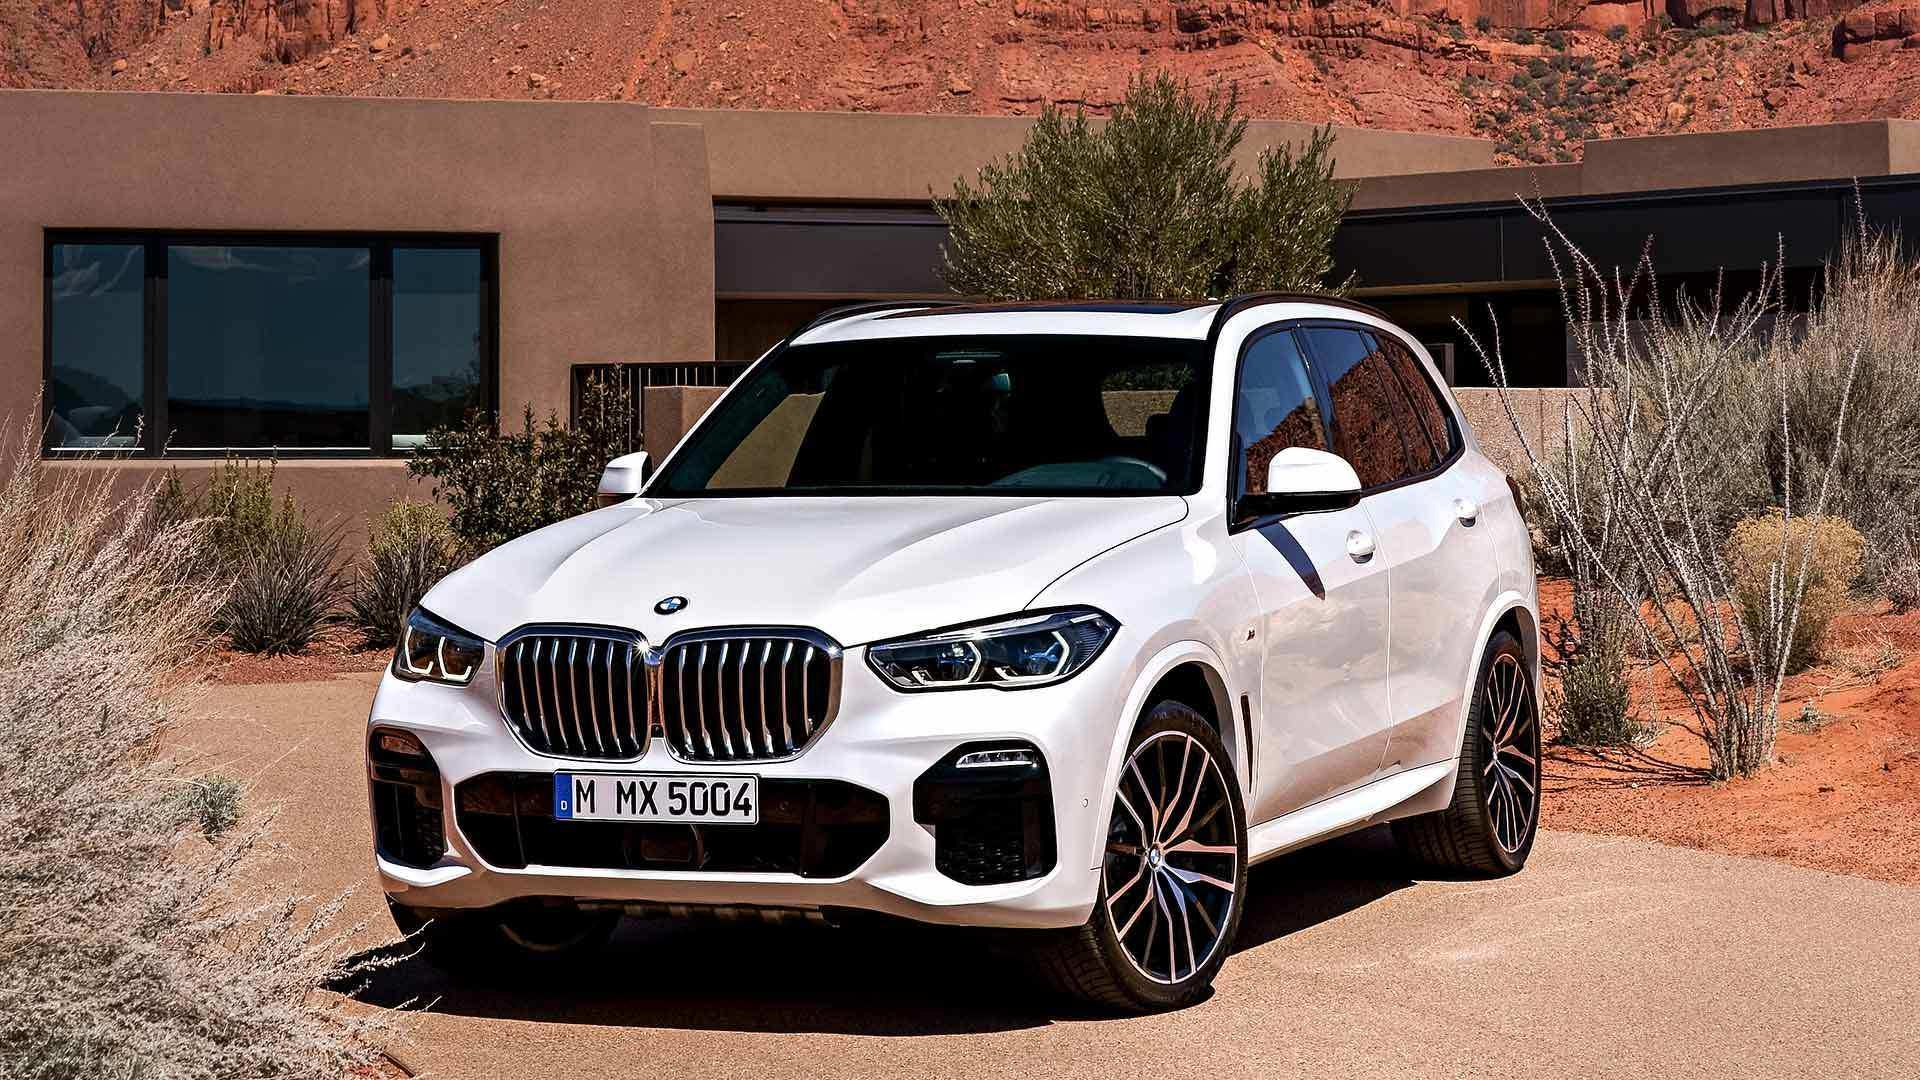 88 The 2019 Bmw X5 Release Date Wallpaper for 2019 Bmw X5 Release Date